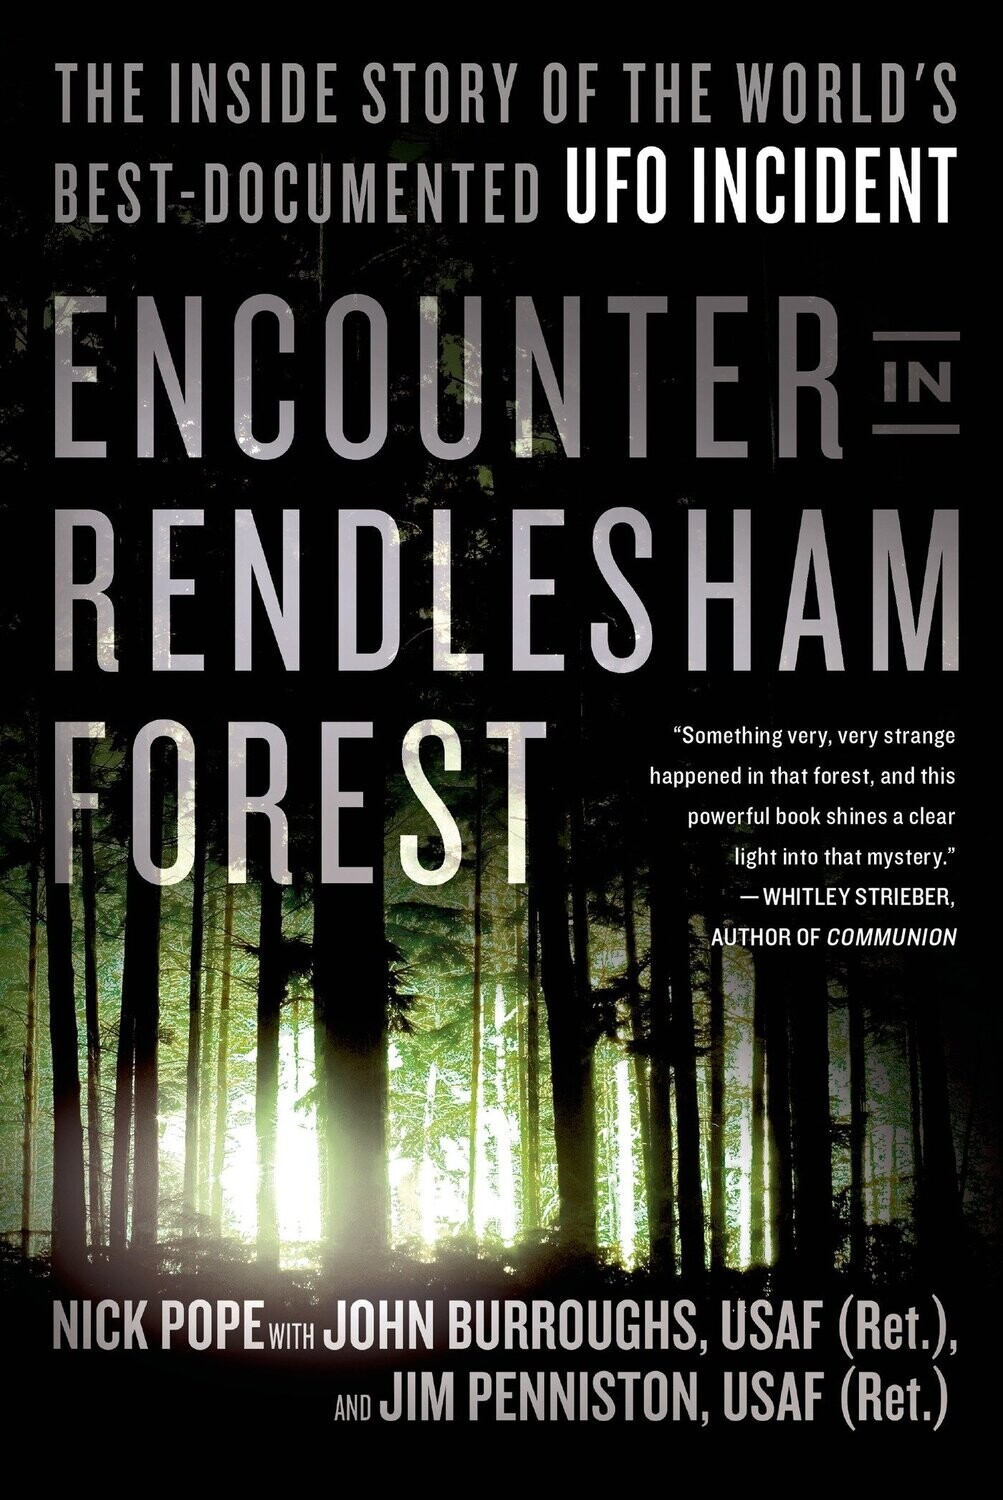 Encounter in Rendlesham Forest: The Inside Story of the World's Best-Documented UFO Incident (Paperback) Book by Nick Pope